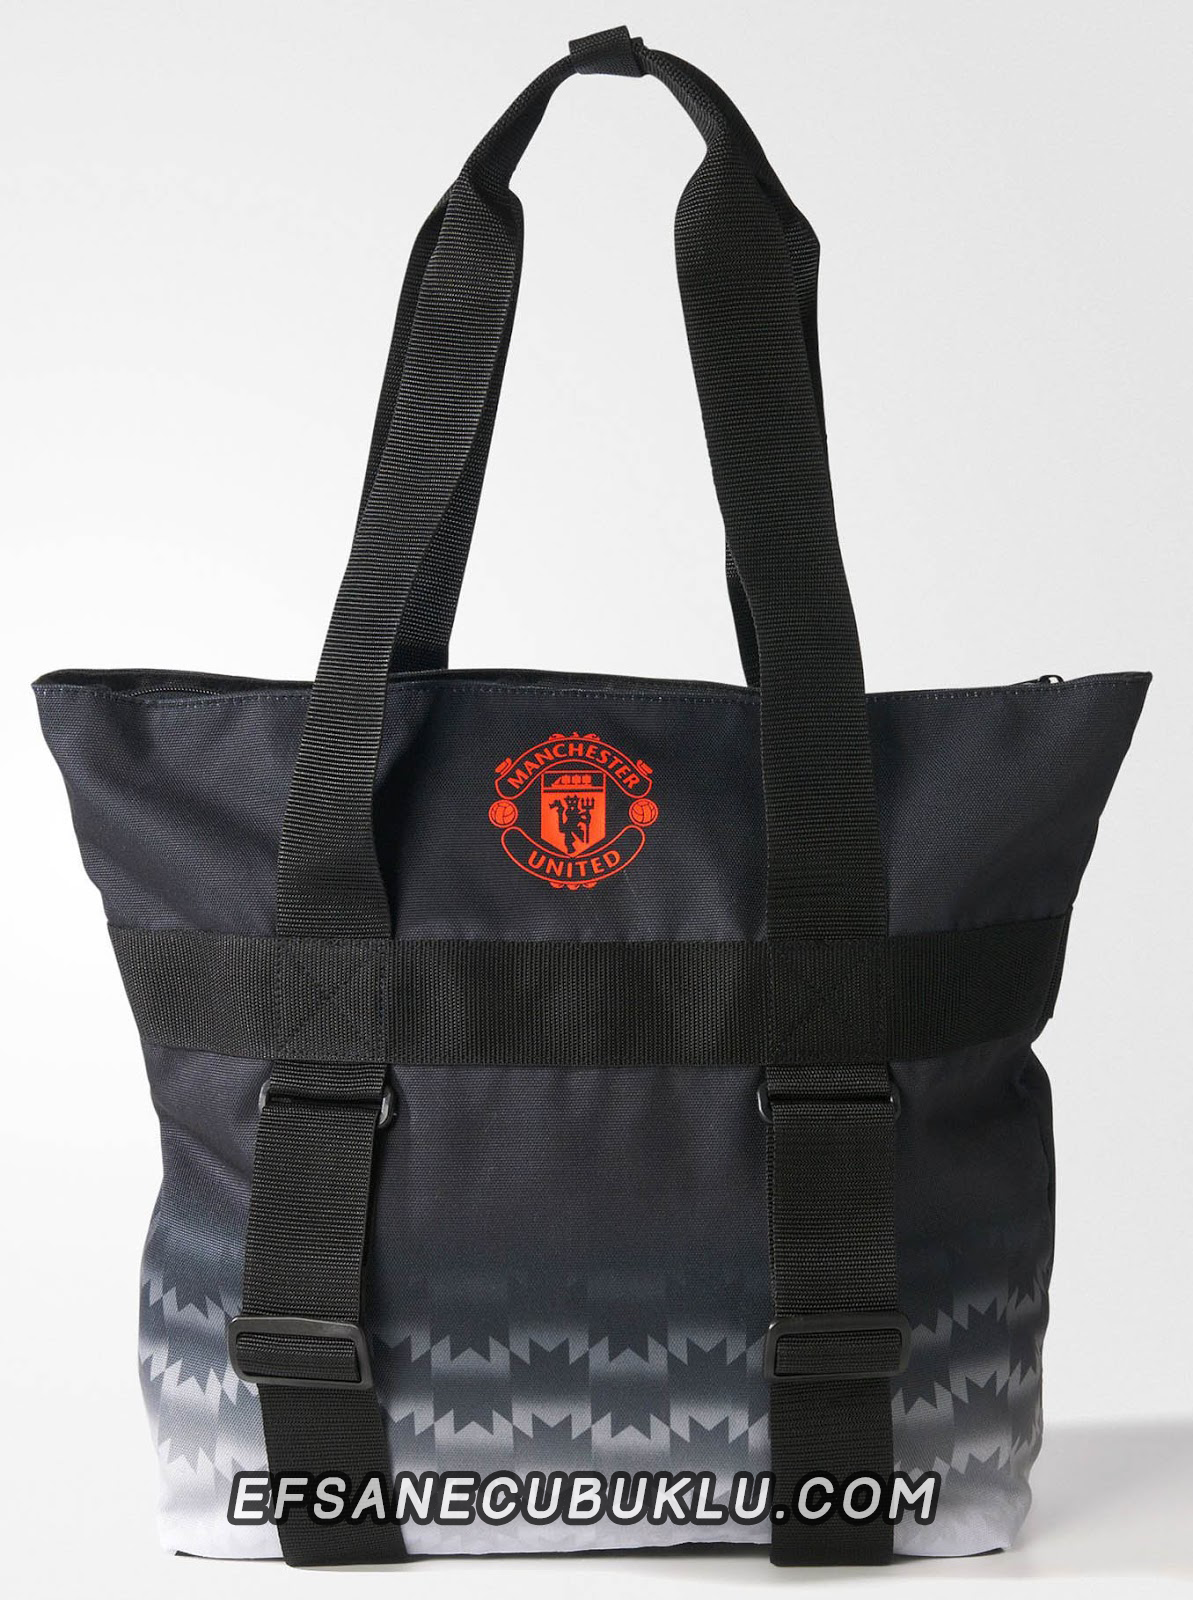 Adidas-Manchester-United-Tee-Bag (4)